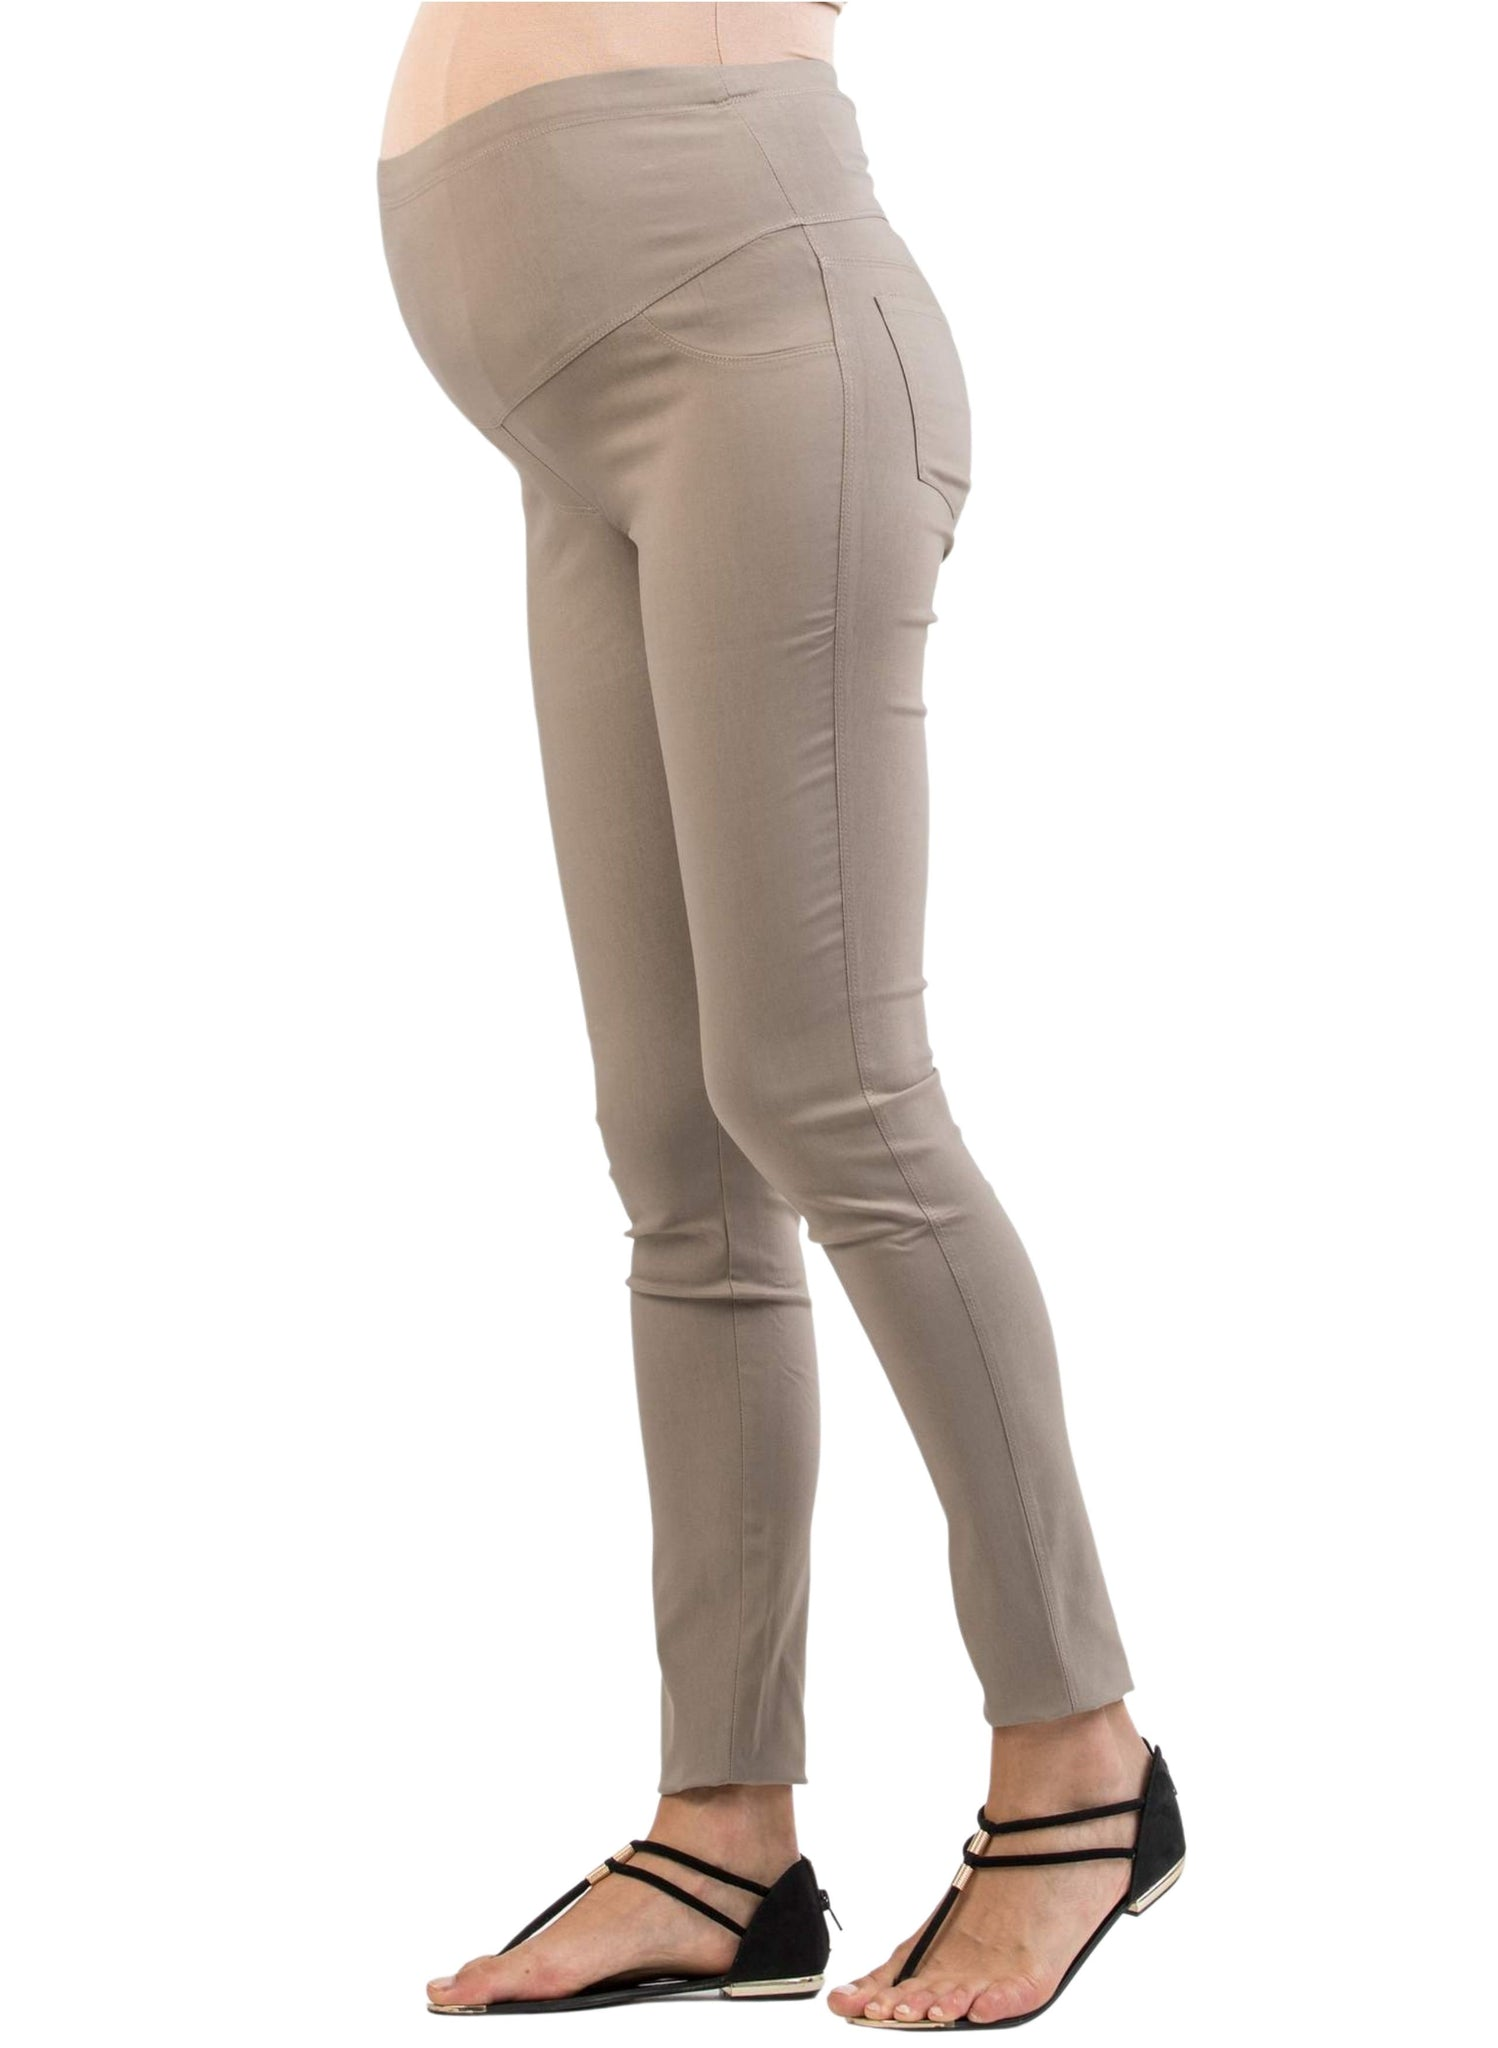 Super Comfortable Skinny Maternity Trousers - Beige